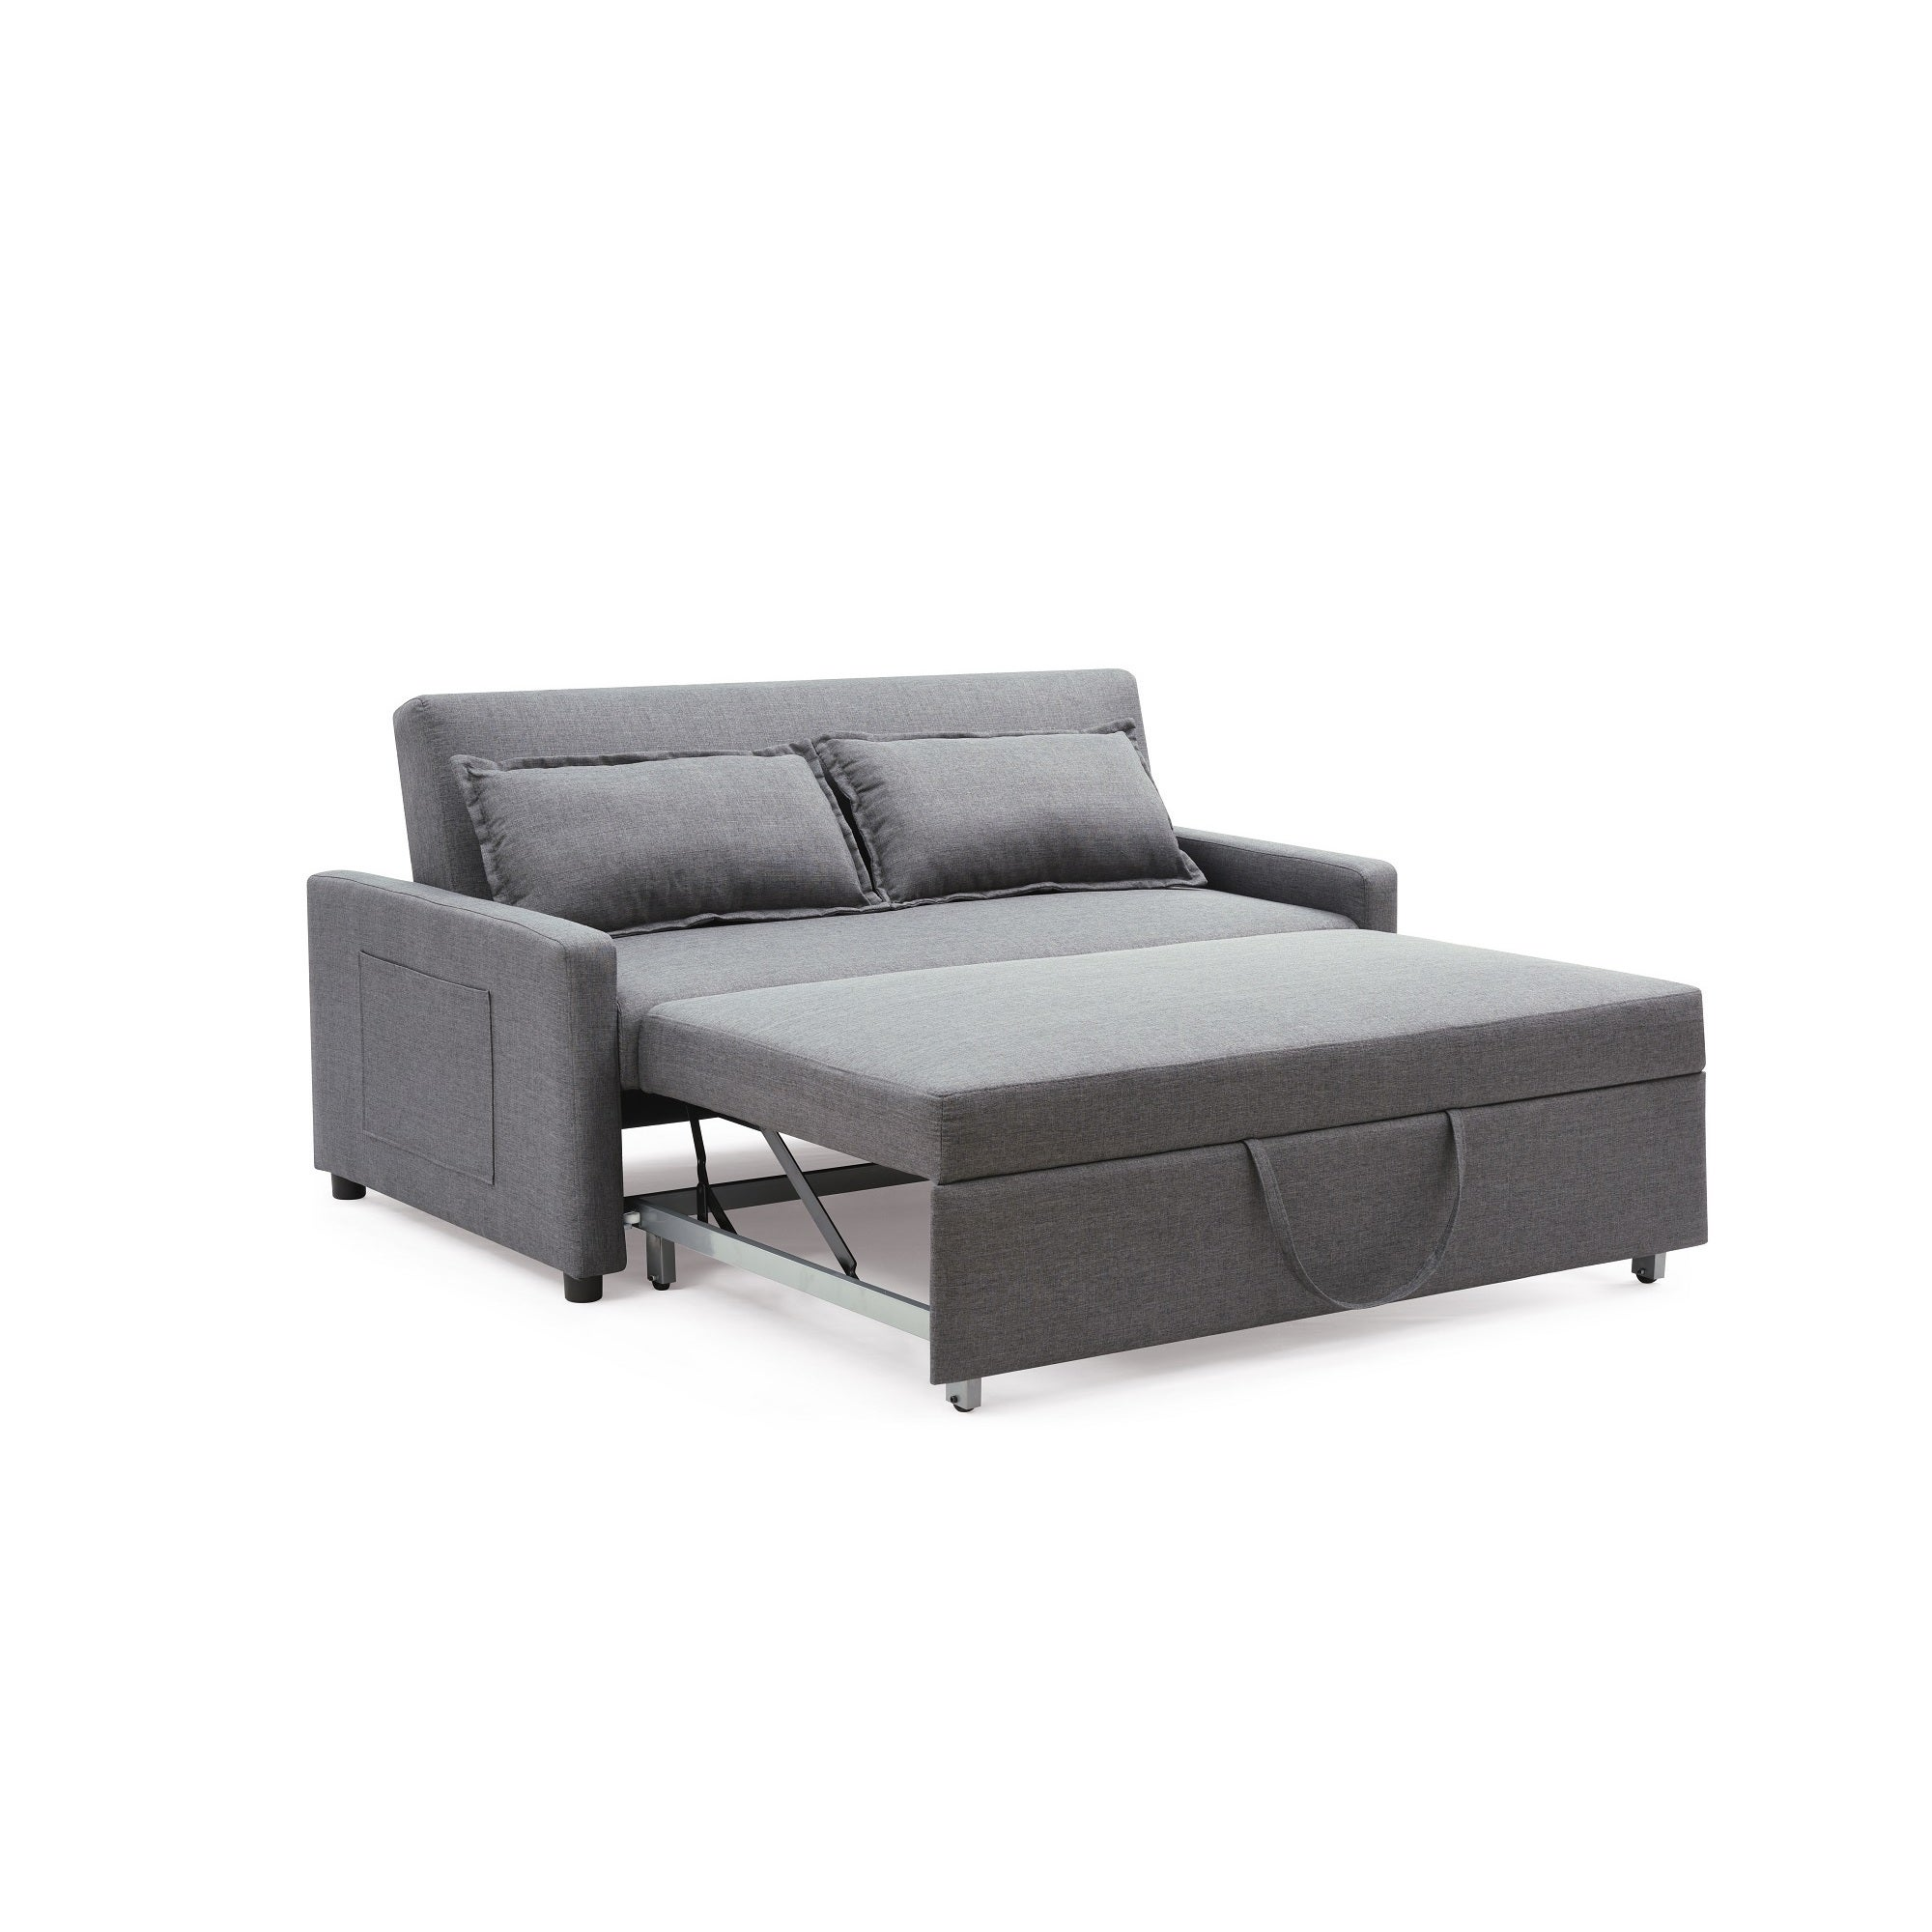 pull out sofa bed. Shop The Curated Nomad Stadtmuller Convertible Sofa With Pullout Bed In Grey (As Is Item) - Free Shipping Today Overstock.com 20614485 Pull Out